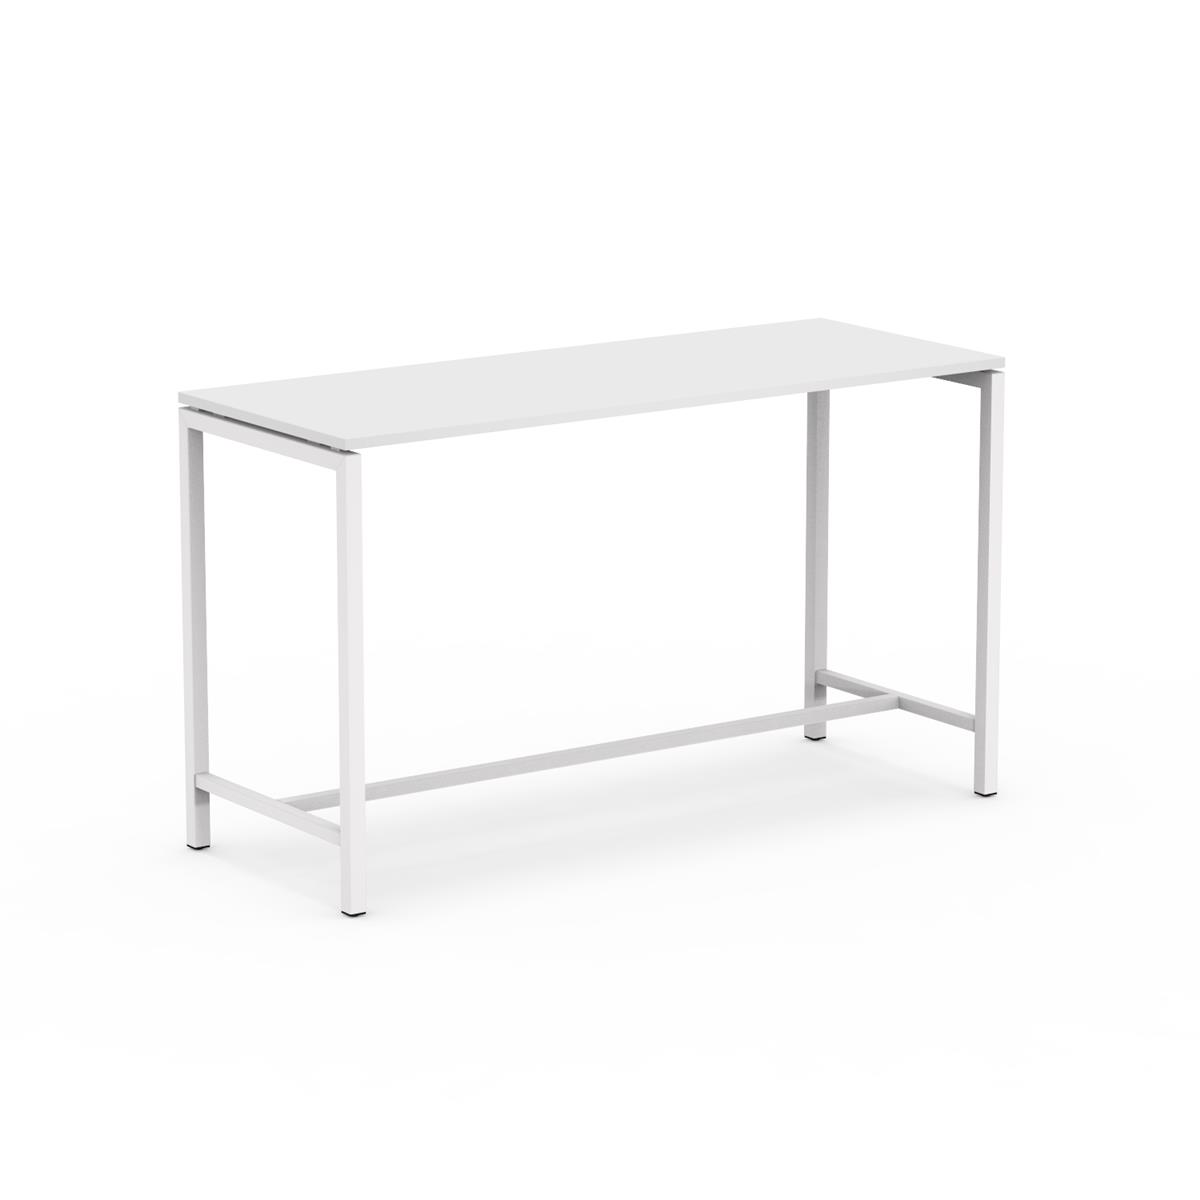 U1 High Table 180 x 70 x H105 cm i hvit melamin